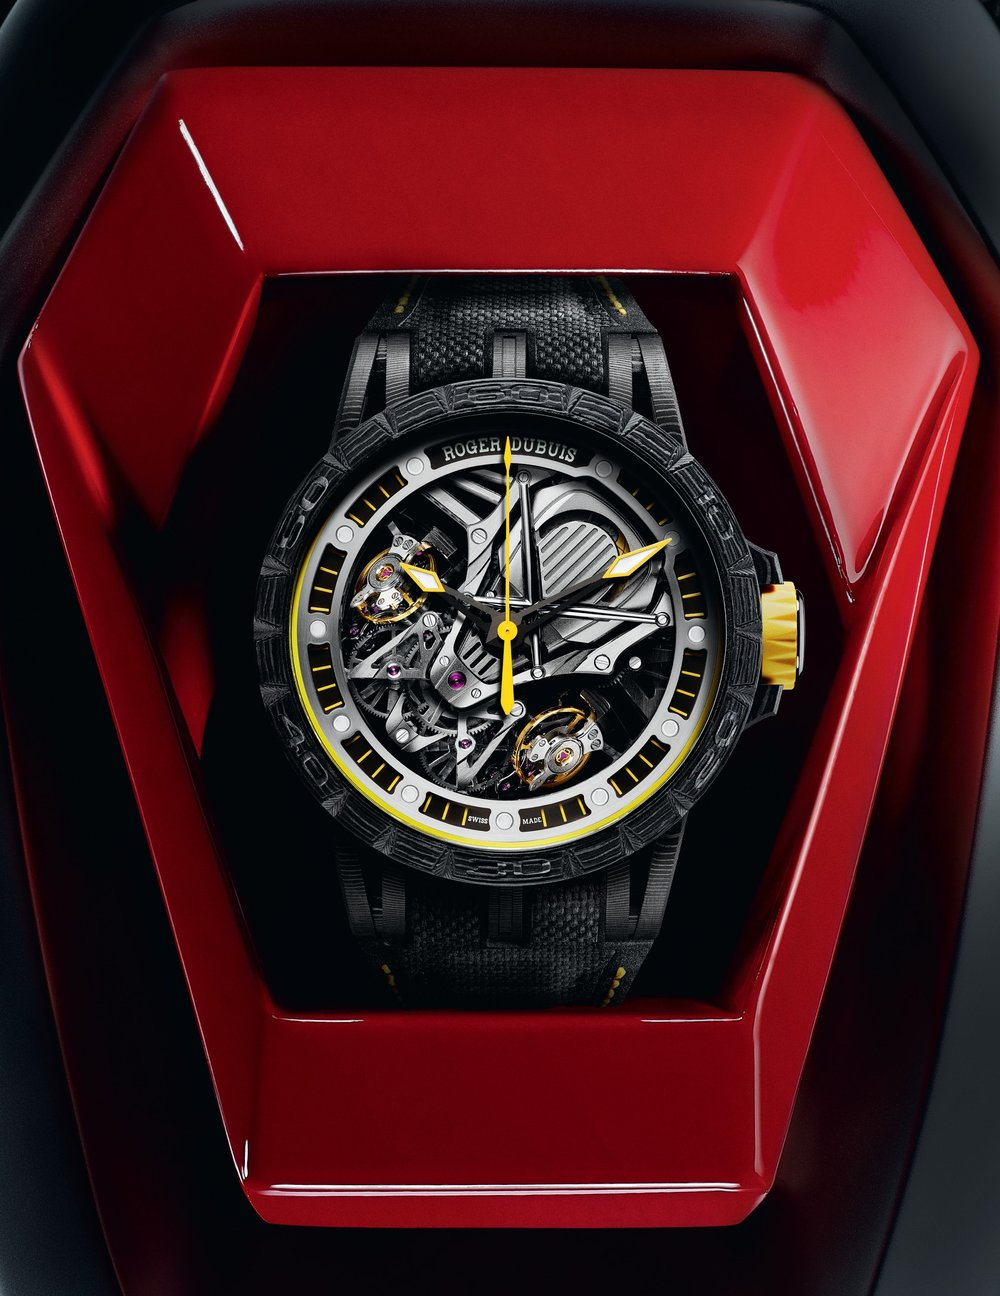 ROGER_DUBUIS_EXCALIBUR_45_SPIDER_WATCH_JAUNE_START_BUTTON---Cadre.jpg